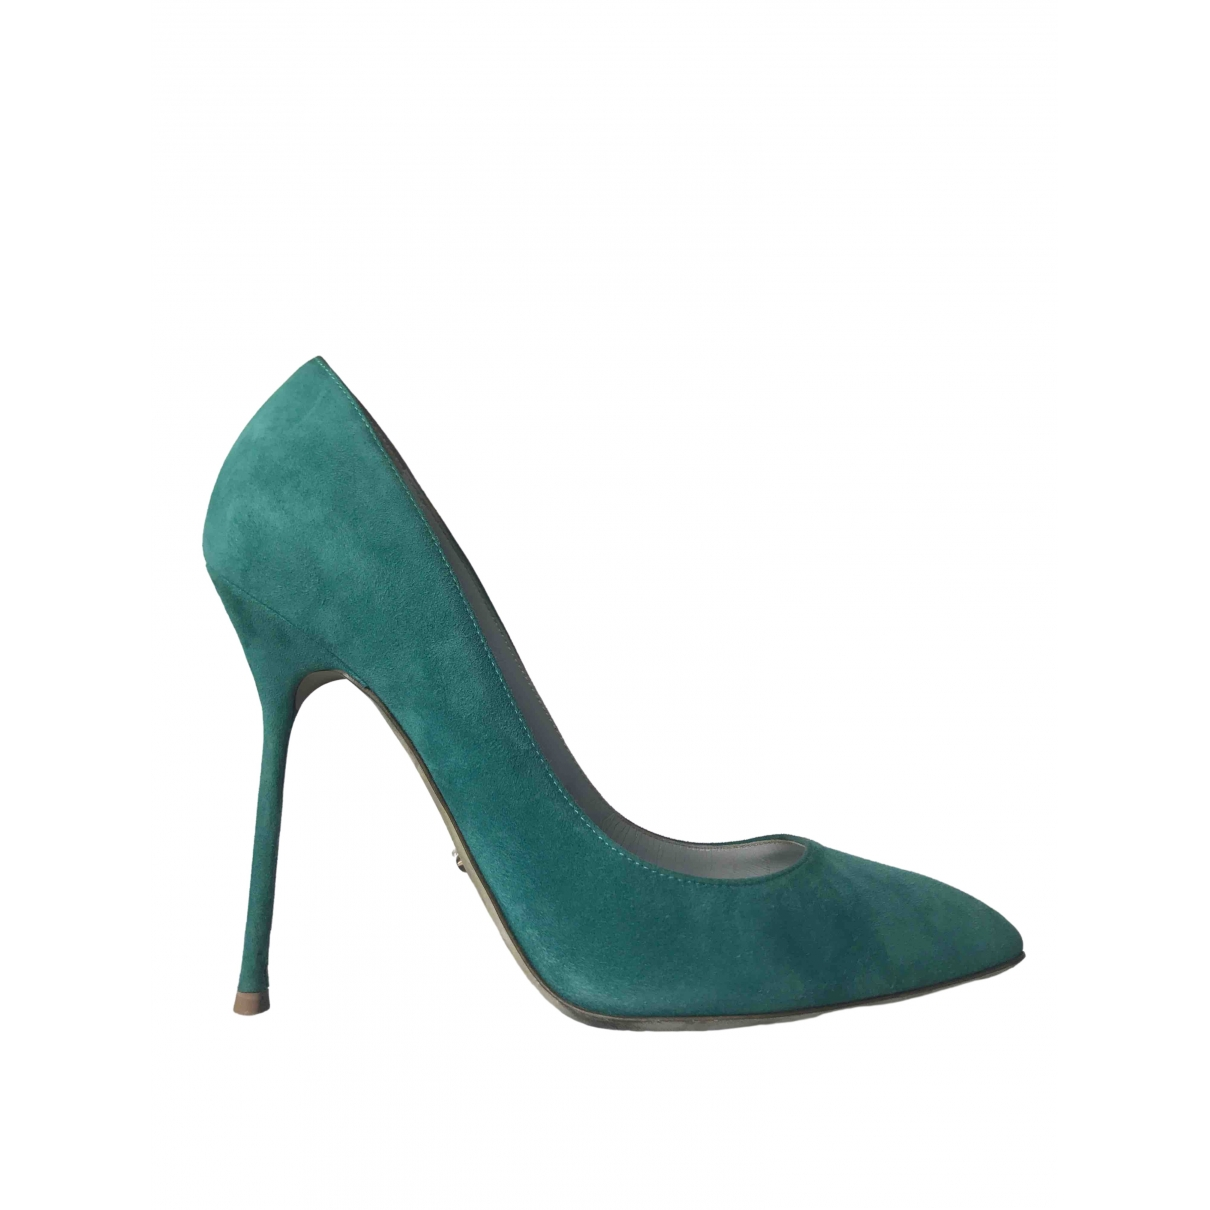 Sergio Rossi \N Green Suede Heels for Women 39 EU